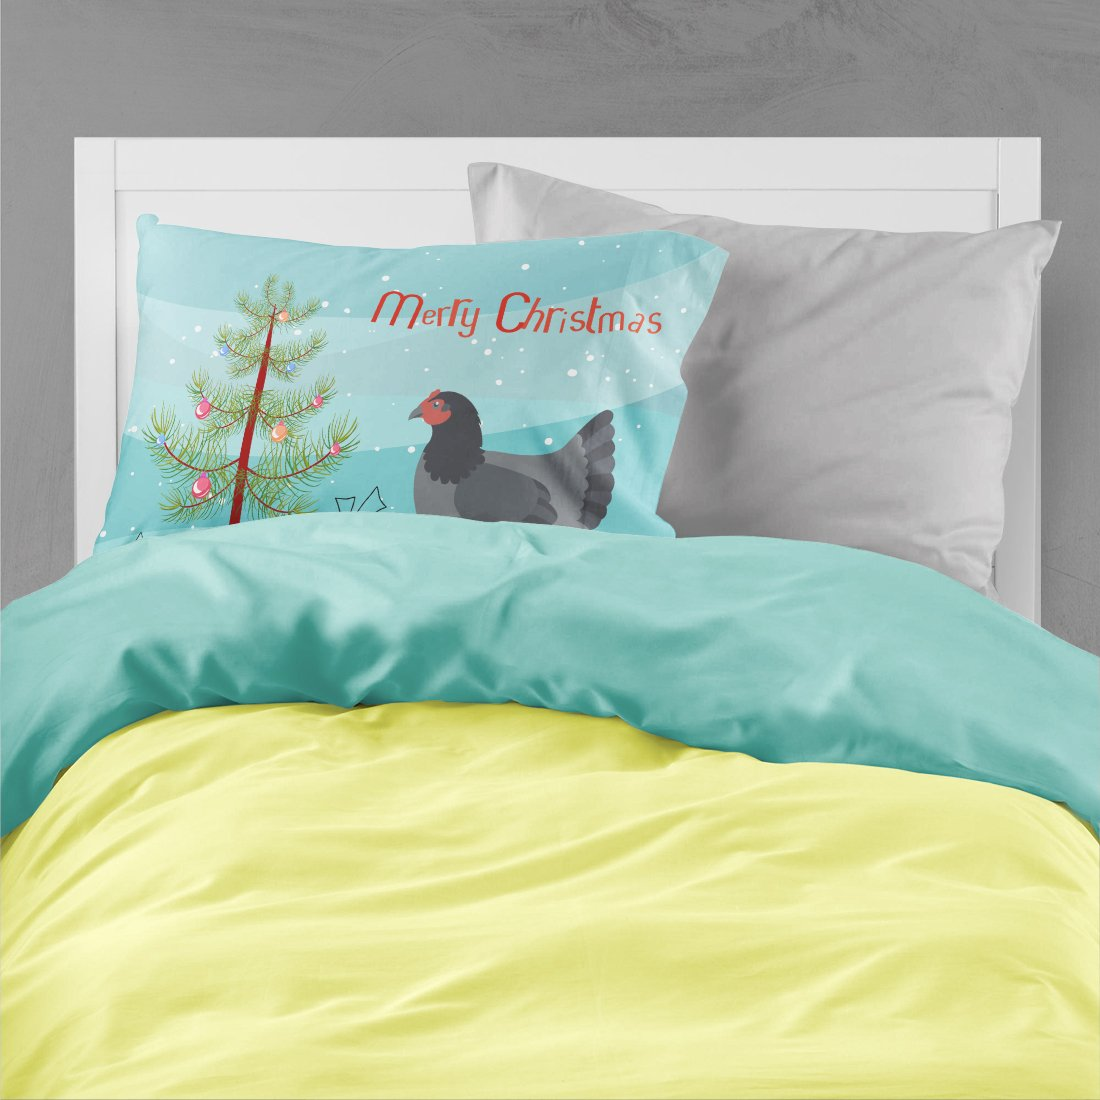 Jersey Giant Chicken Christmas Fabric Standard Pillowcase BB9202PILLOWCASE by Caroline's Treasures